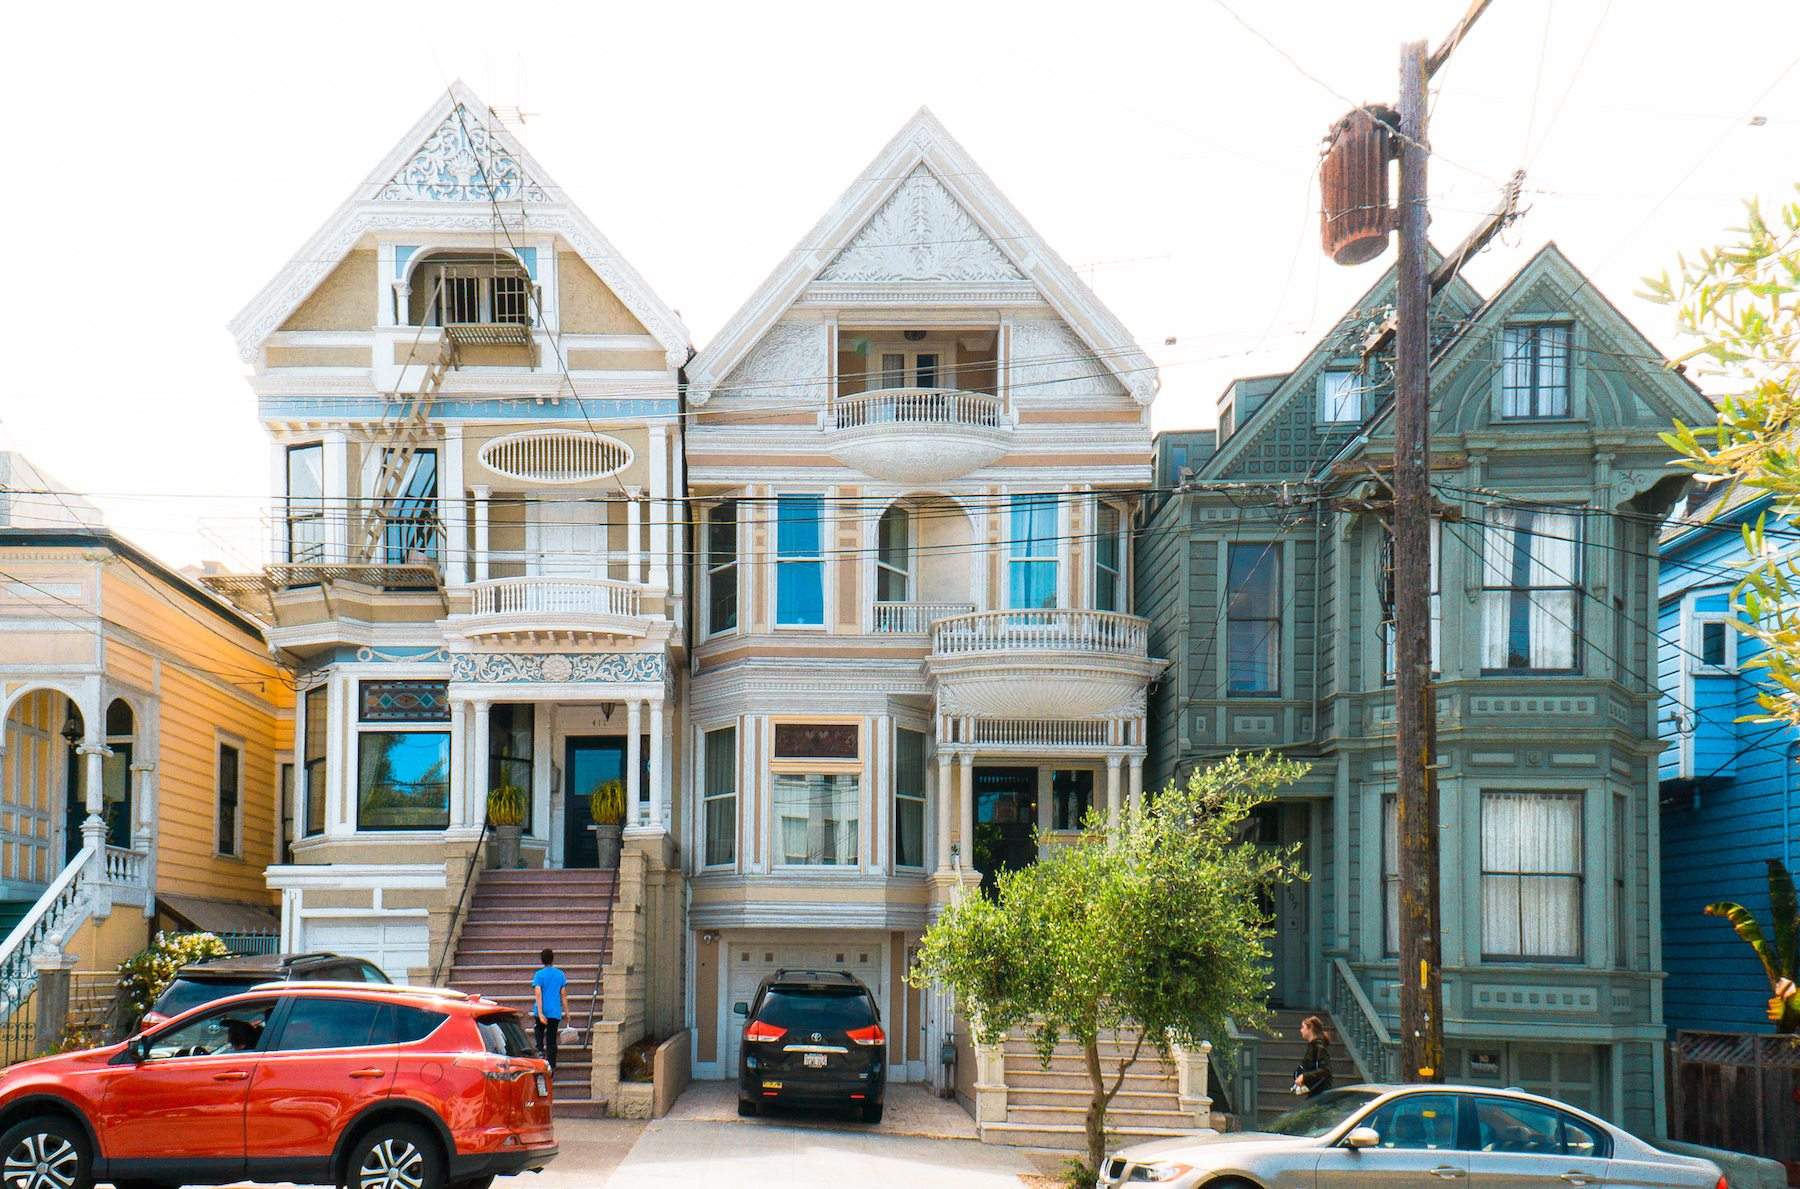 Victorian homes of Haight. Photo: Justin Wong, 49miles.com.